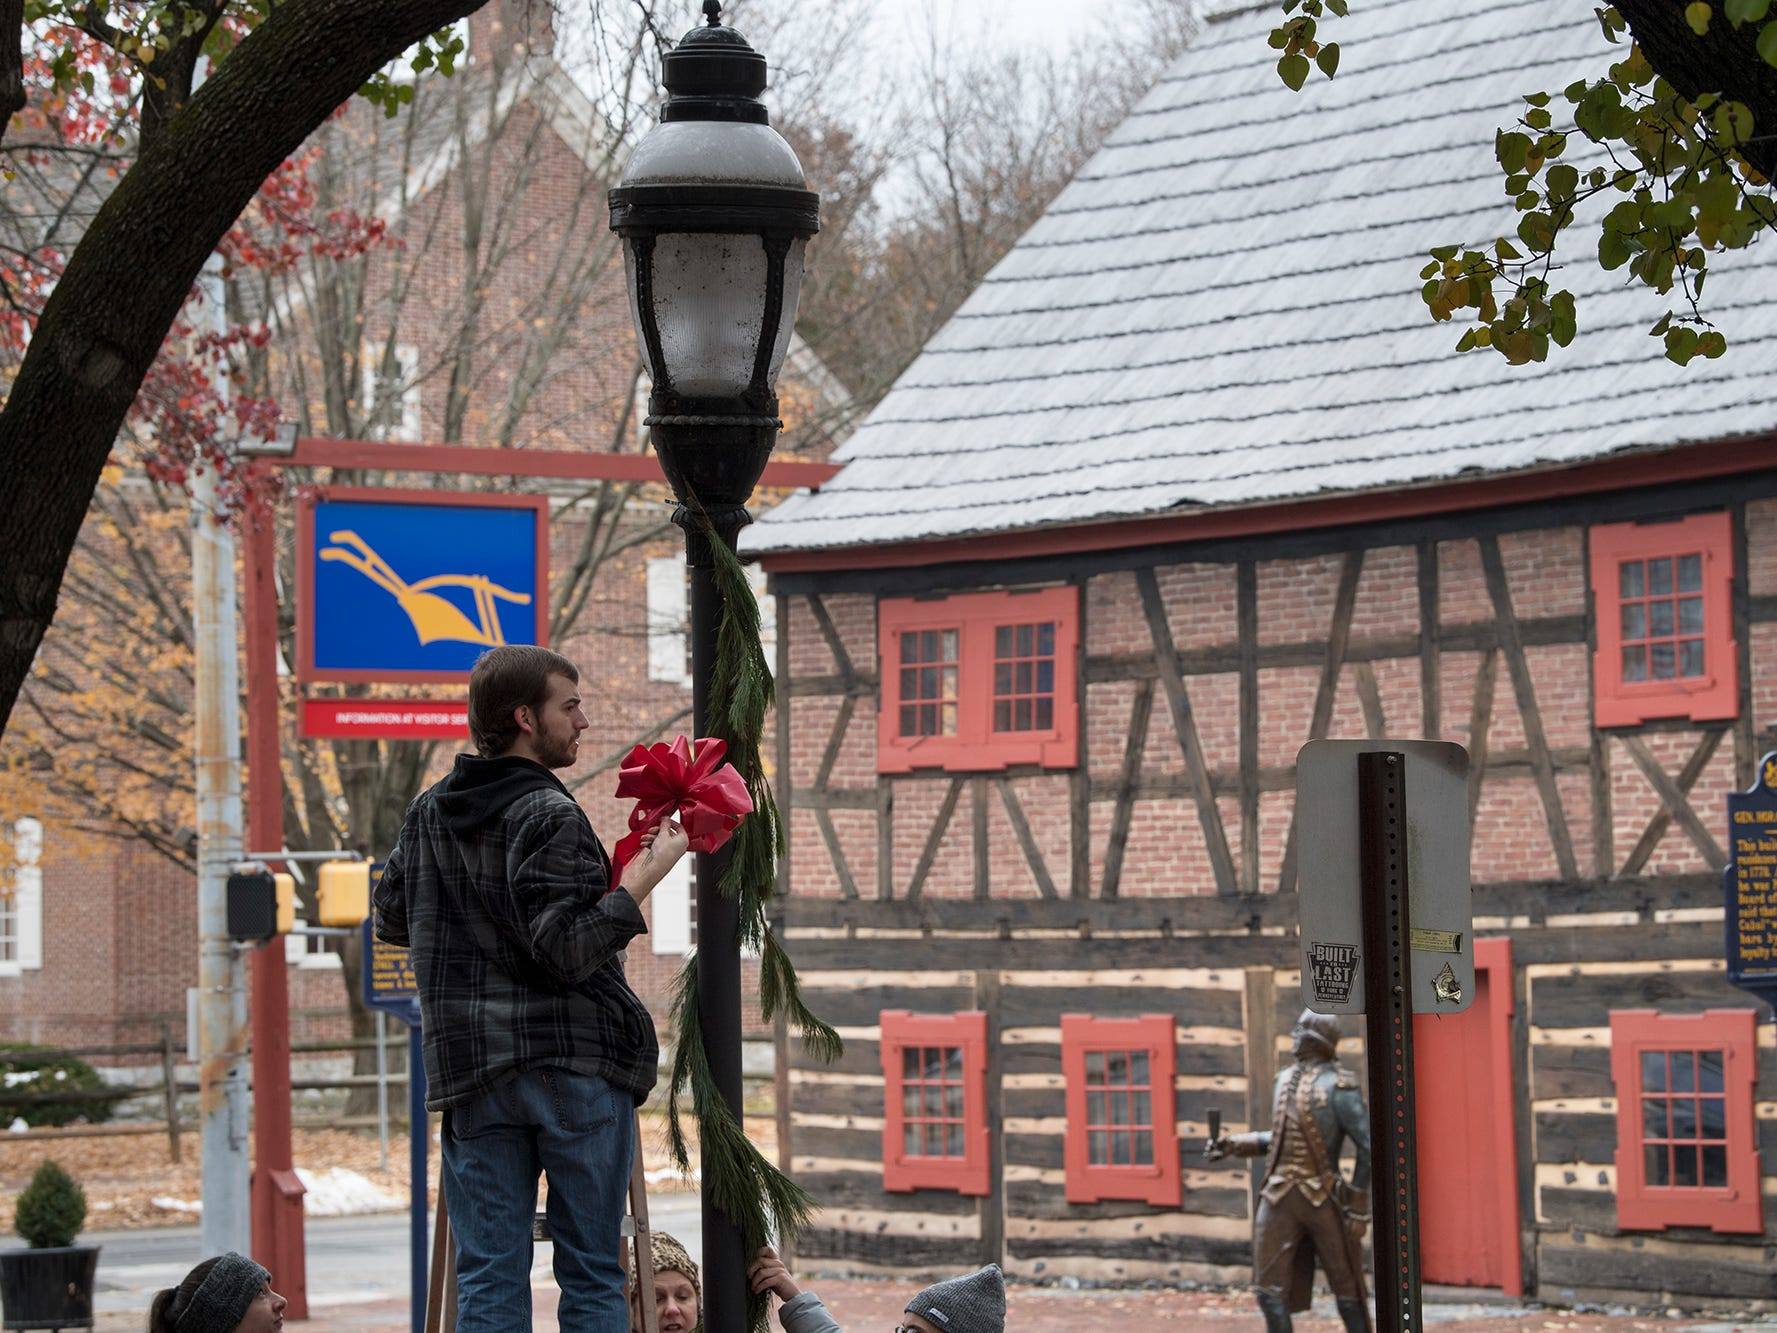 Zach Galloway, a volunteer with RLK, ties a bow on a lamppost near the Golden Plough Tavern and Gates House during the Hanging of the Greens around Continental Square in York on Sunday.